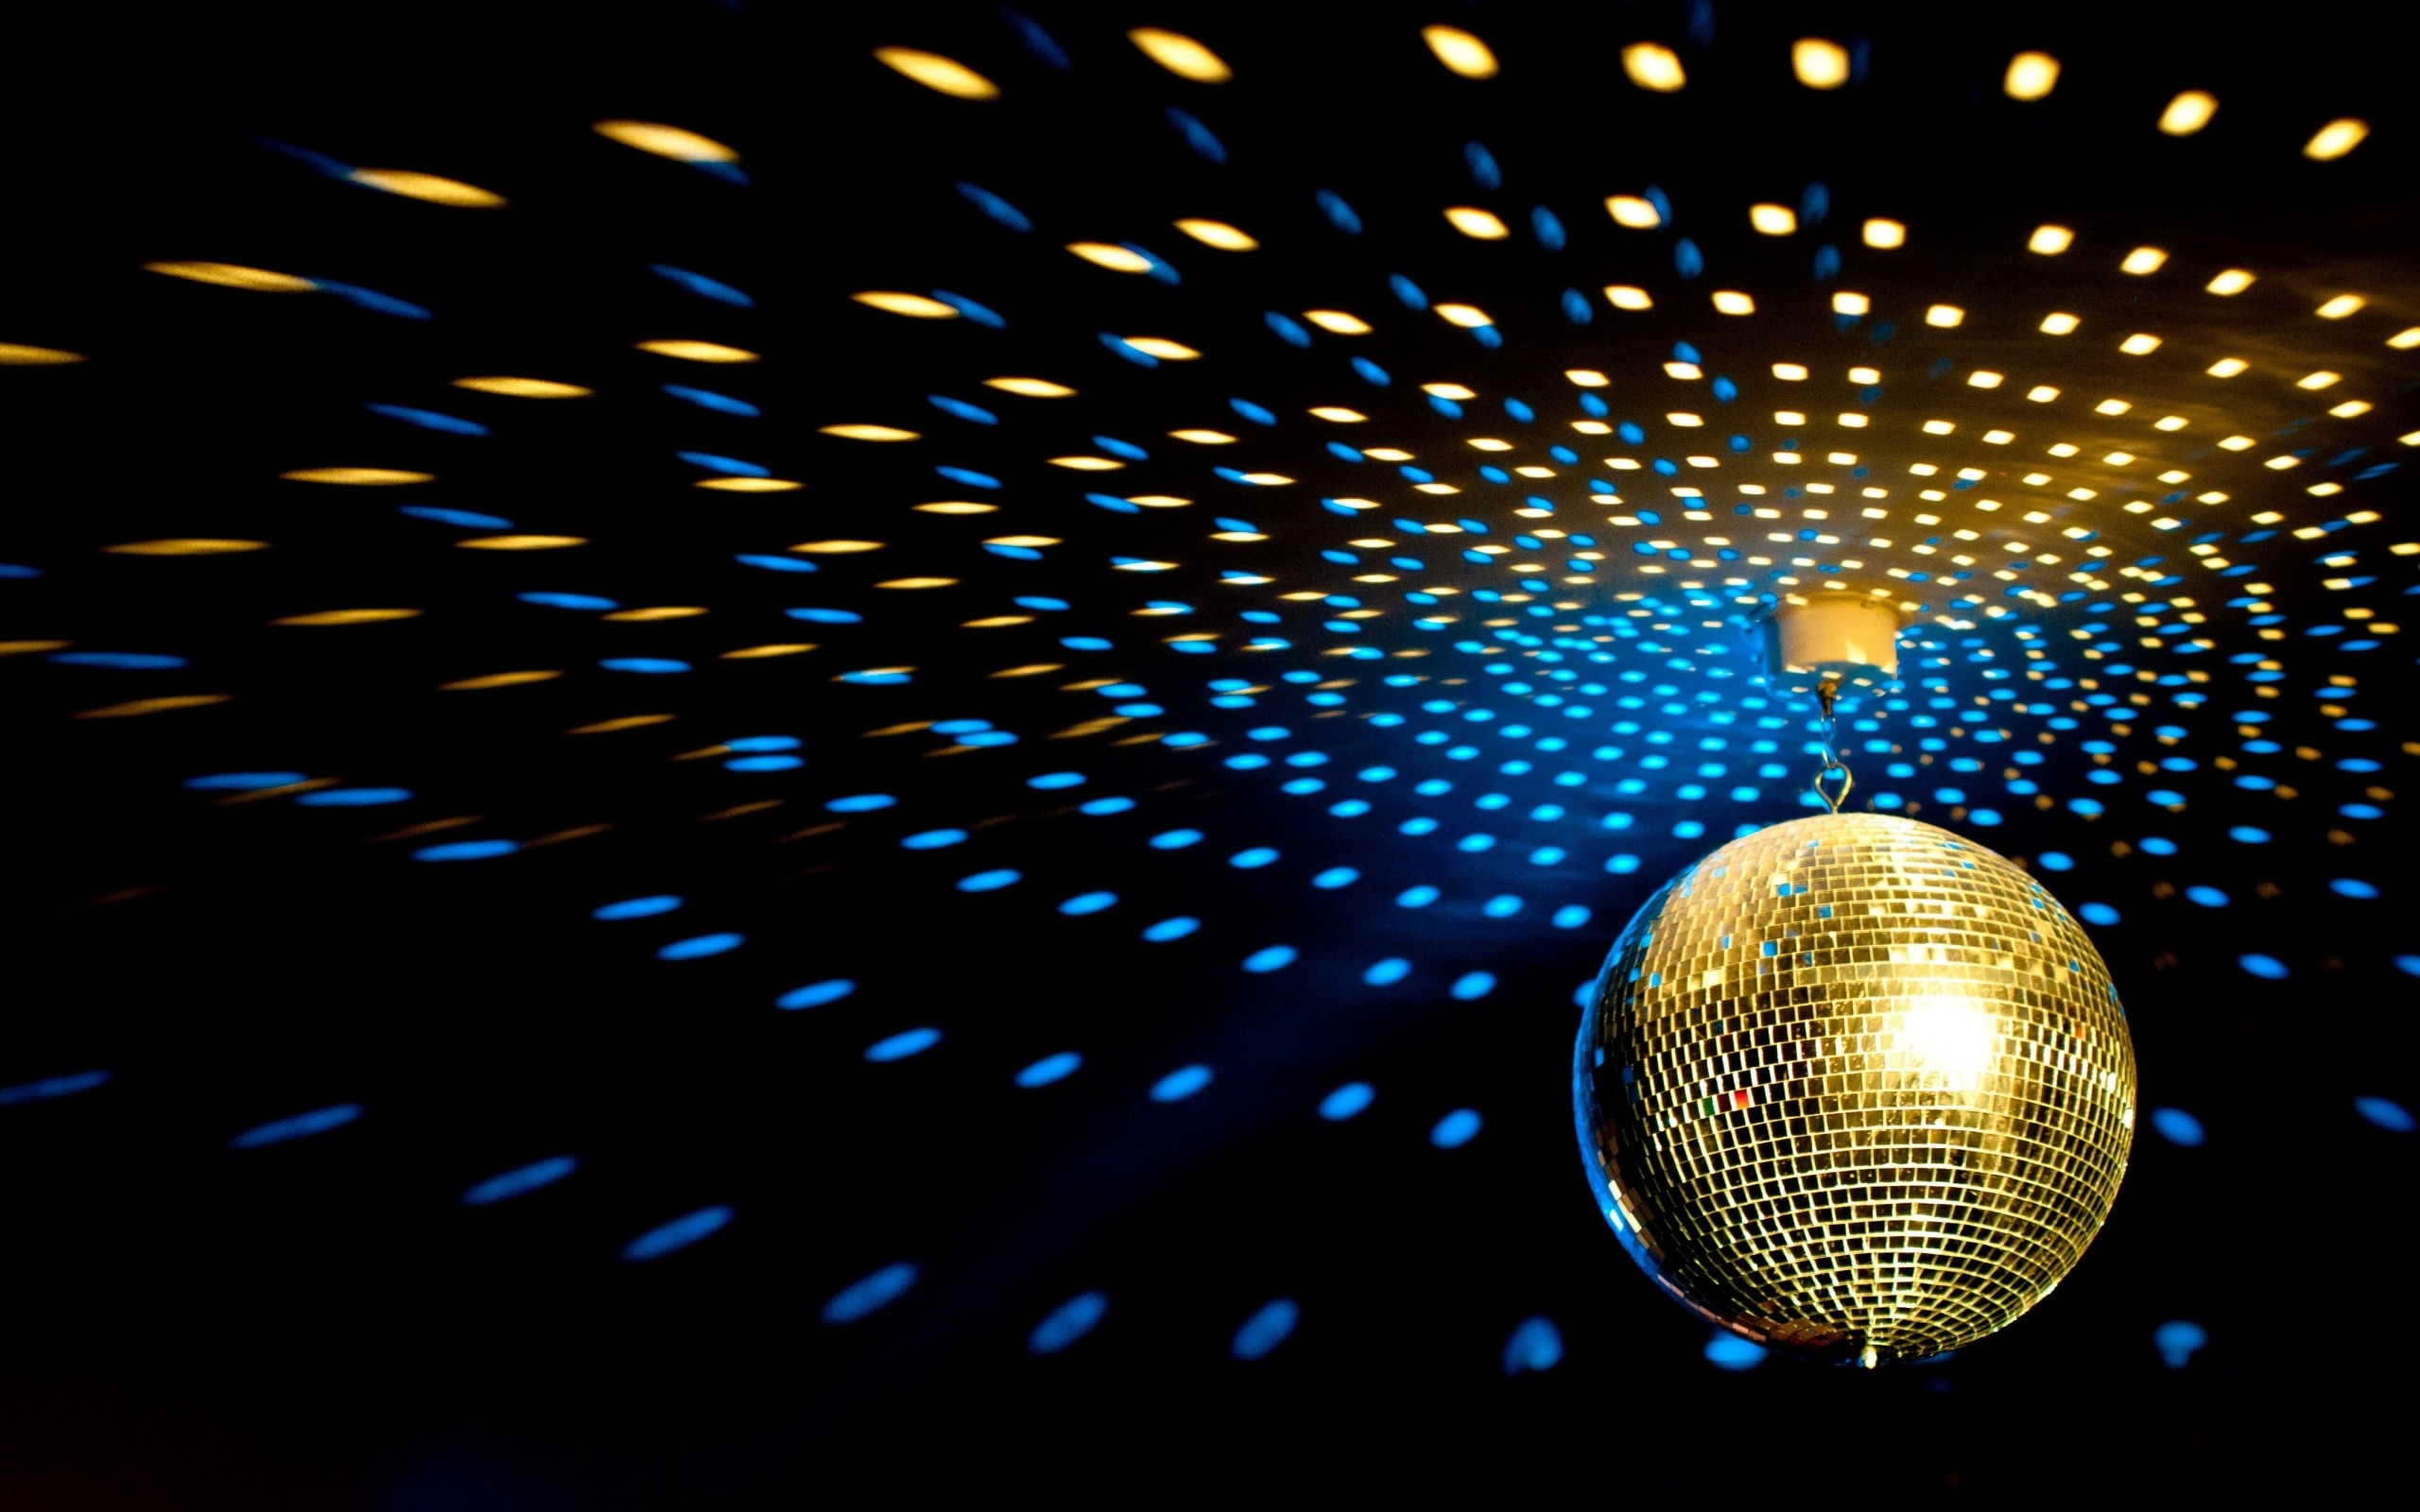 DJ Lights Entertainment Wallpaper HD Free Download.